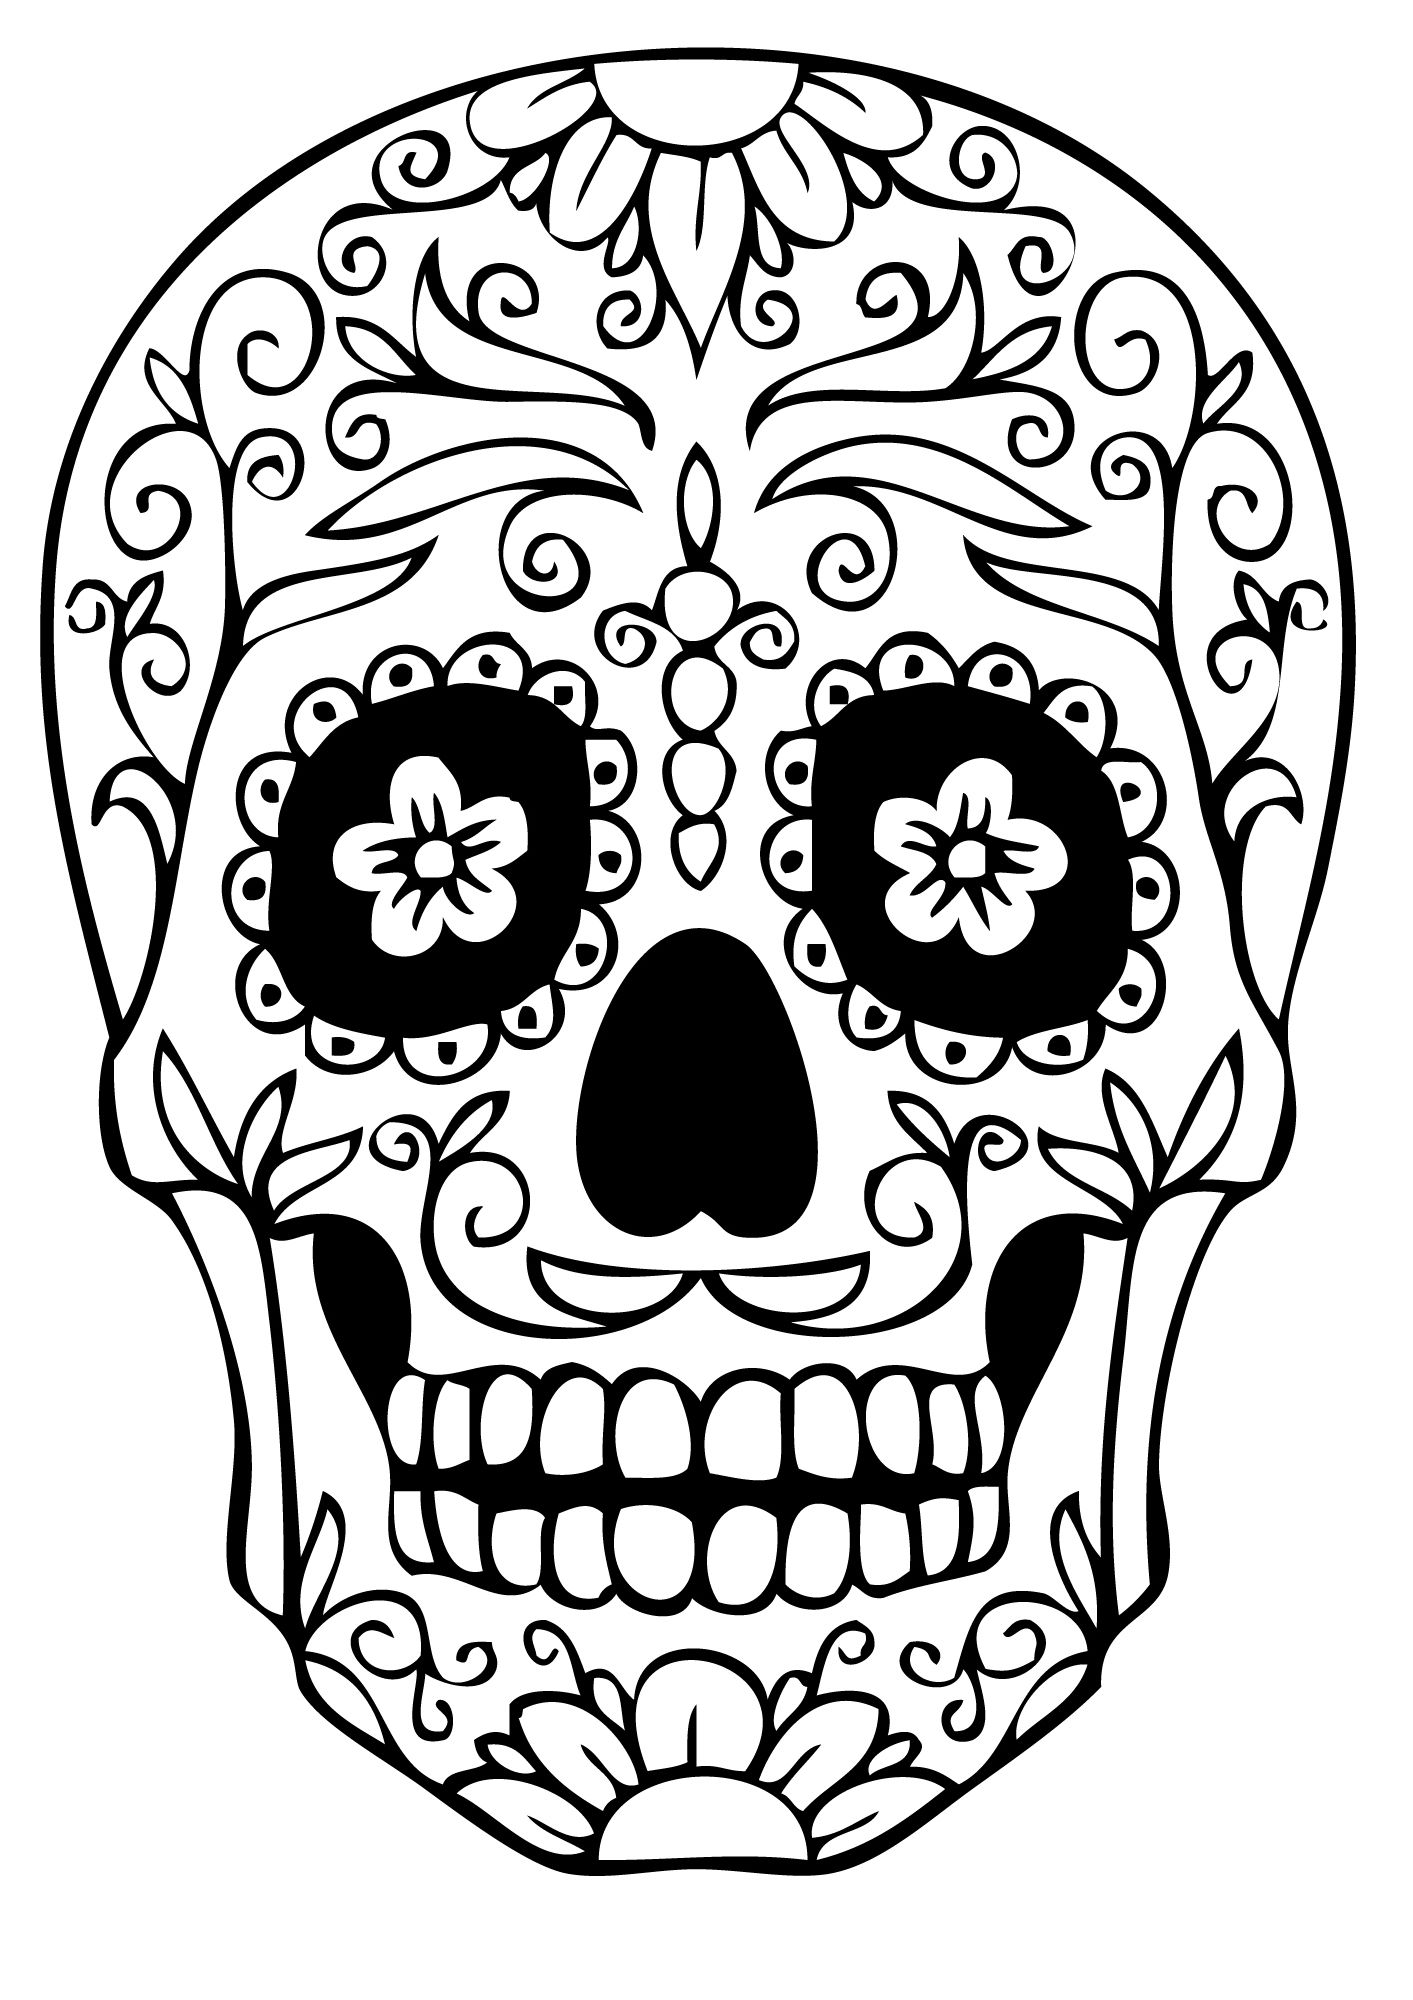 Crazy image intended for printable sugar skulls